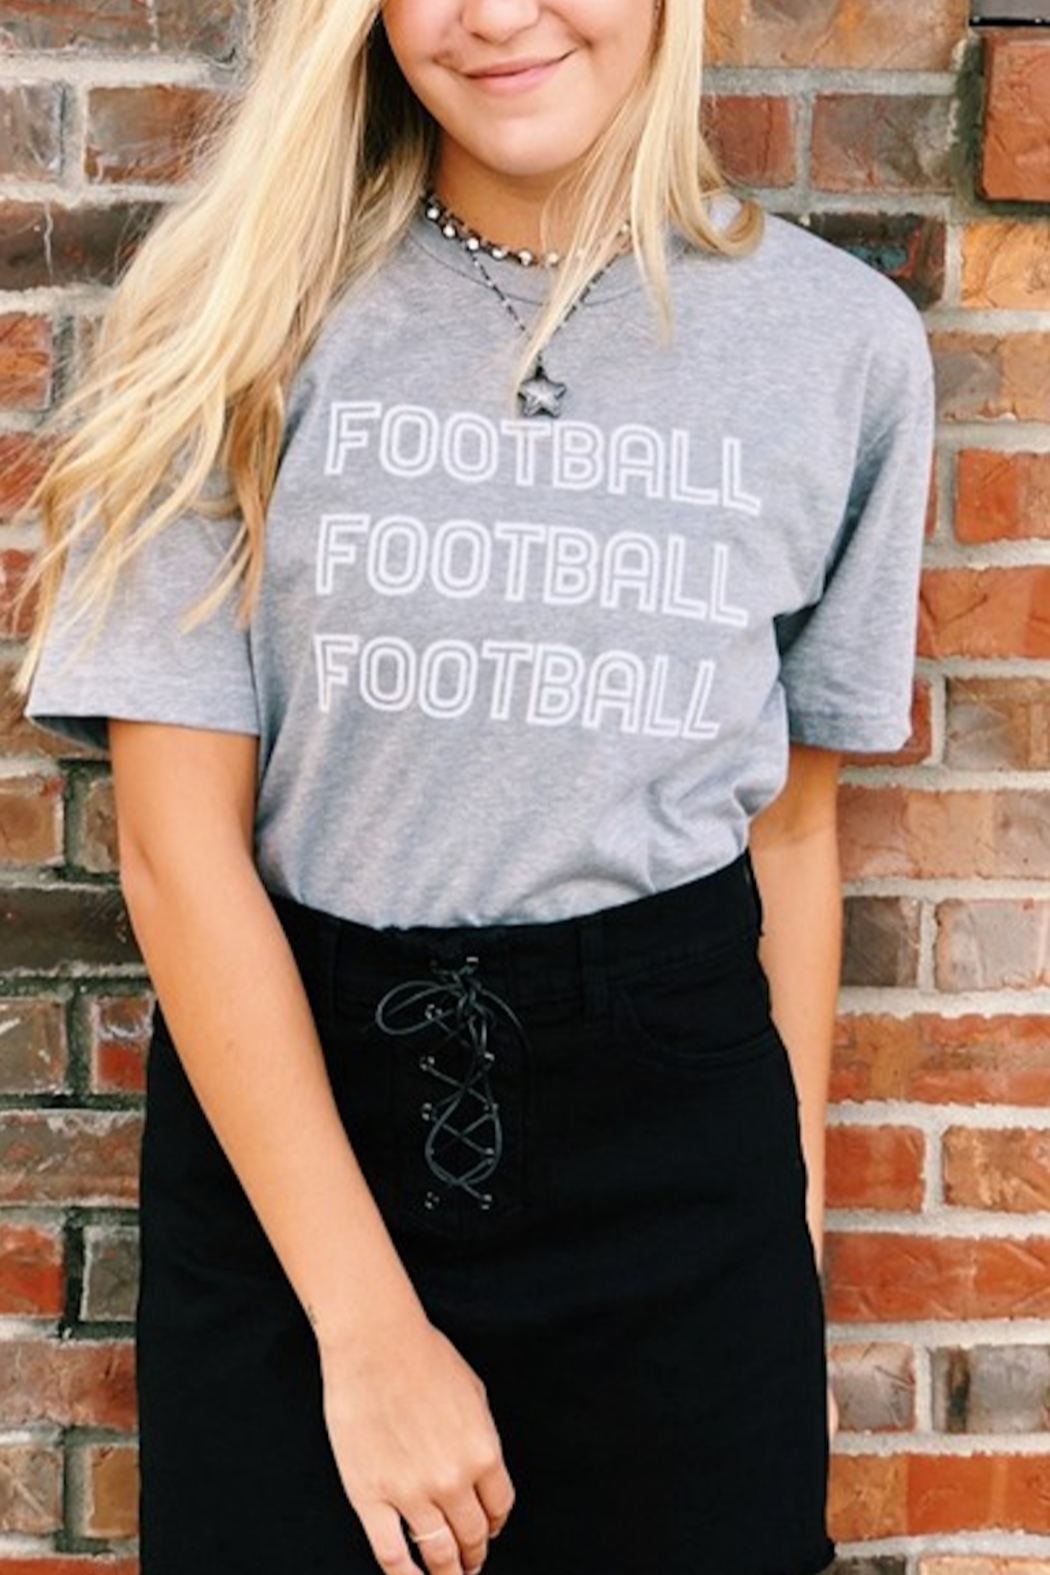 vintage soul Football Football Football Tee - Front Cropped Image